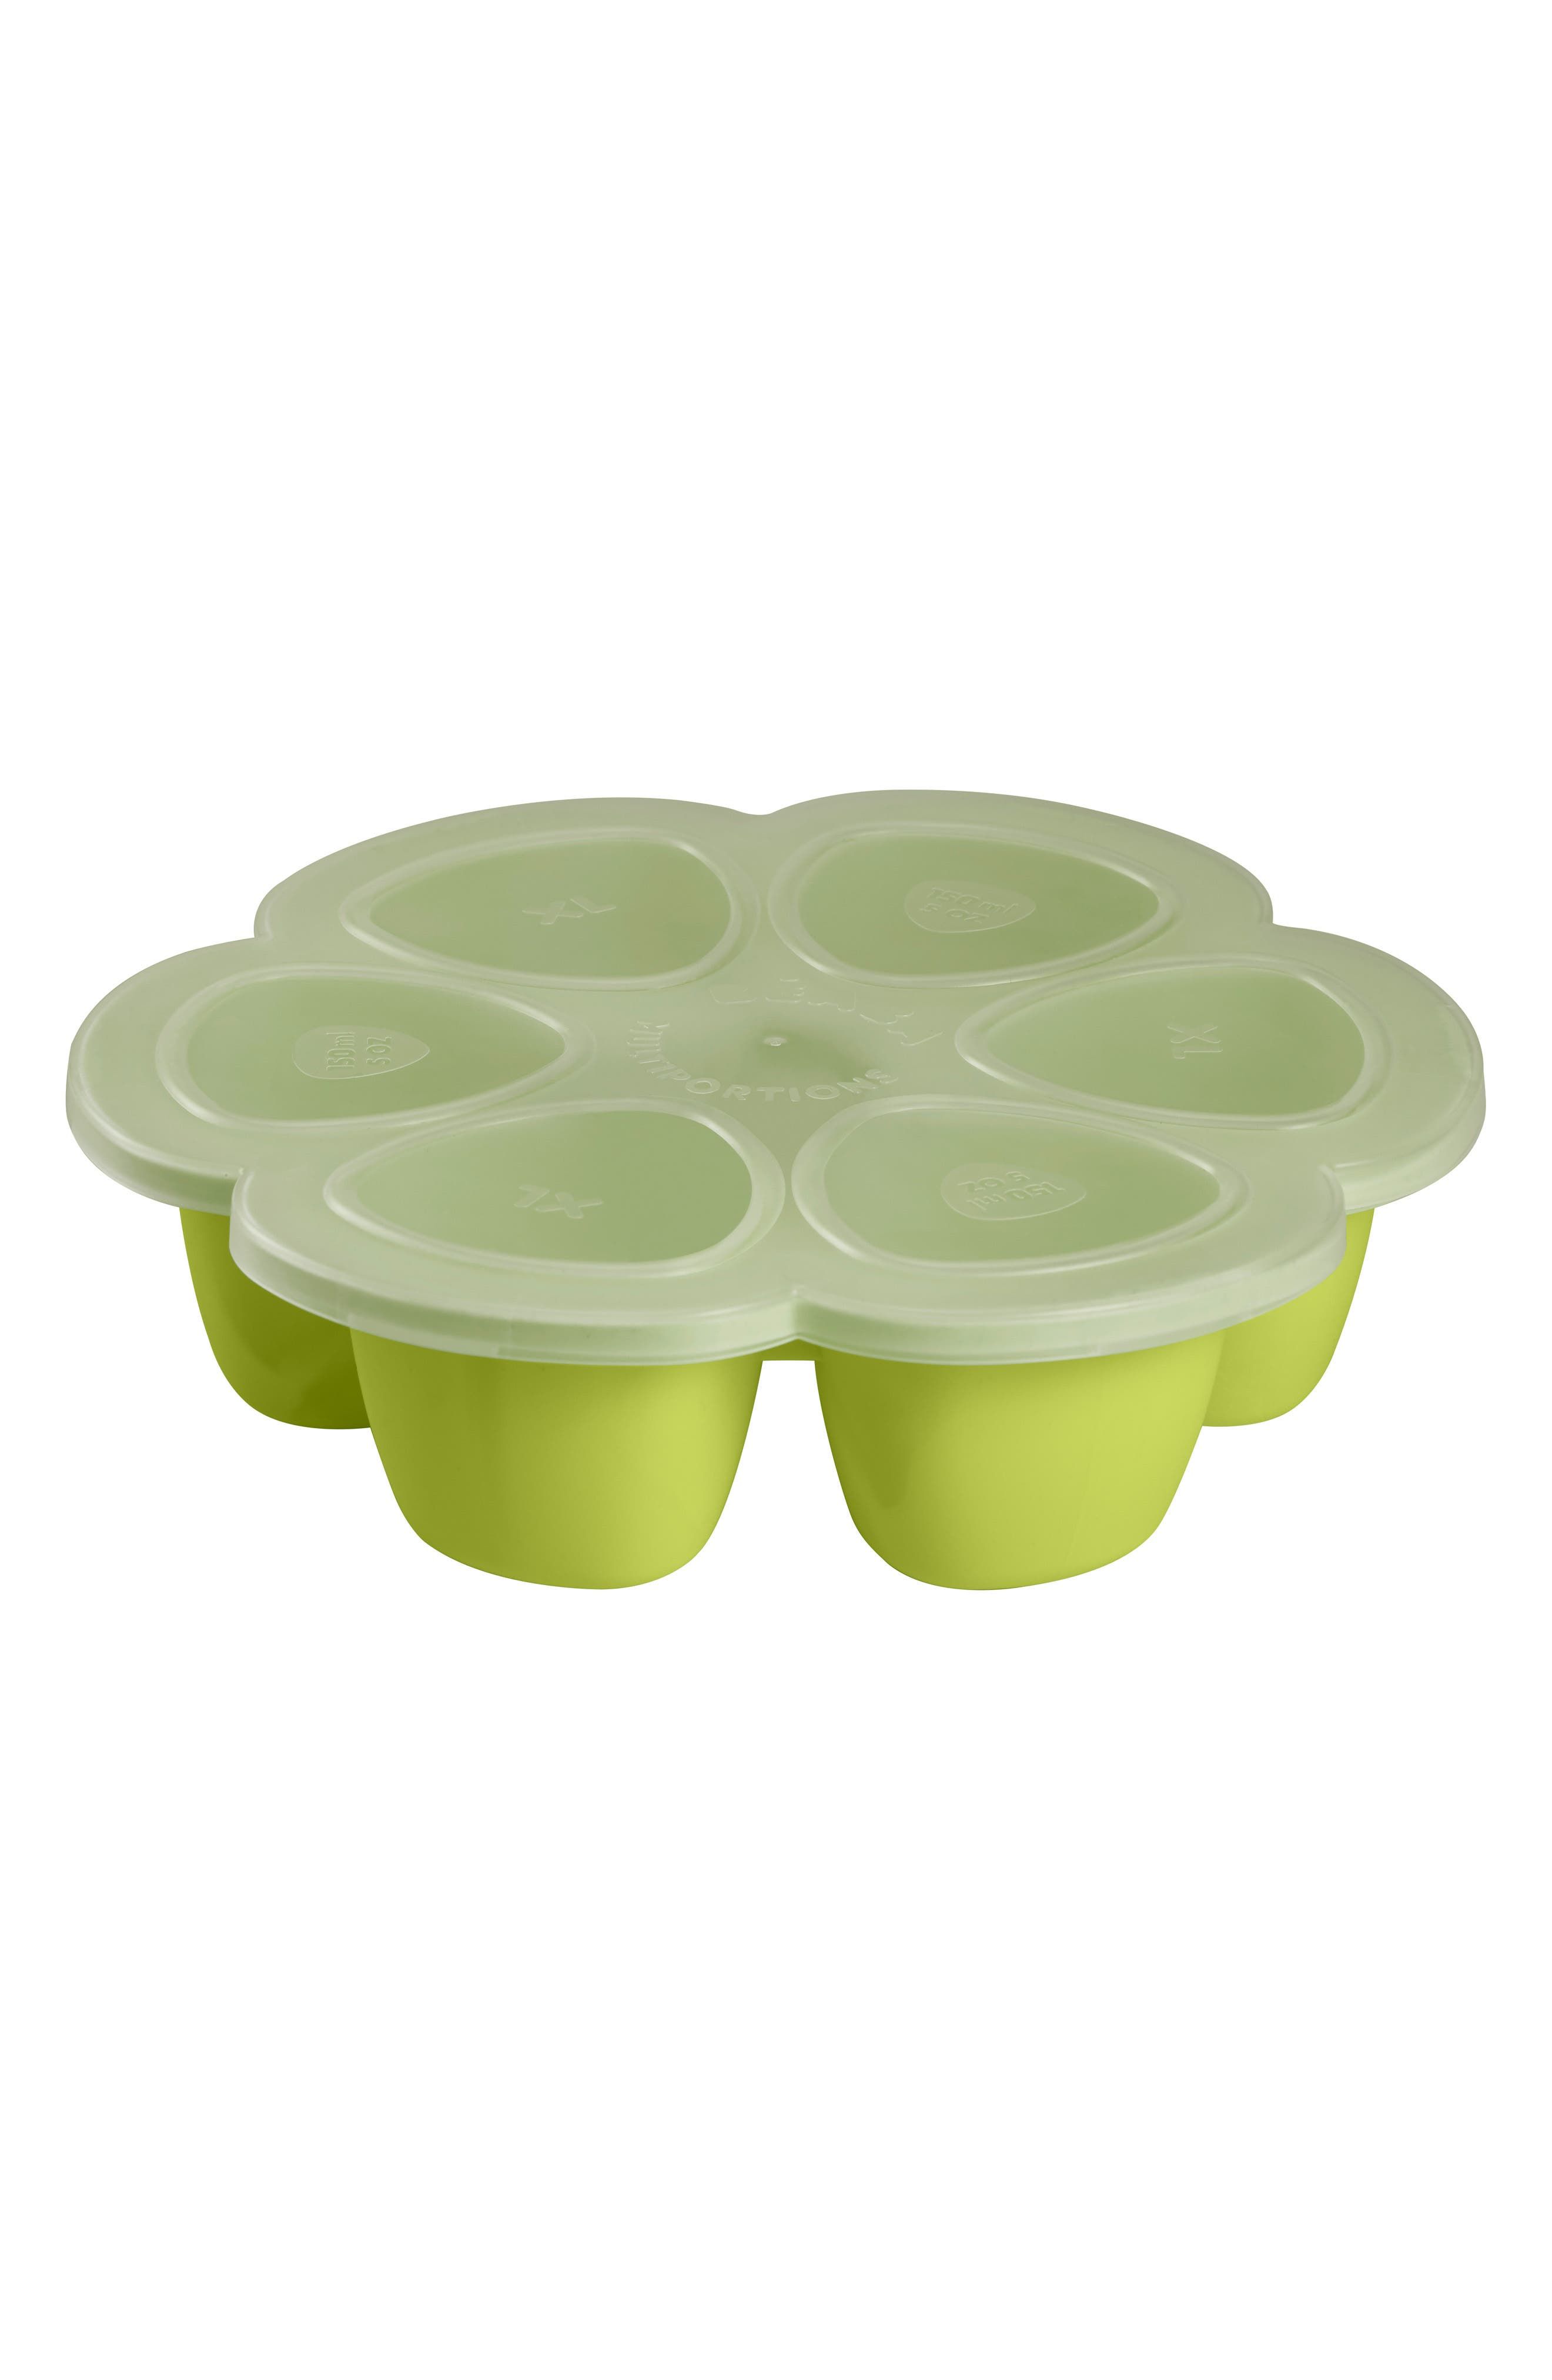 'Multiportions<sup>™</sup>' Silicone 5 oz. Food Cup Tray,                             Alternate thumbnail 2, color,                             Neon